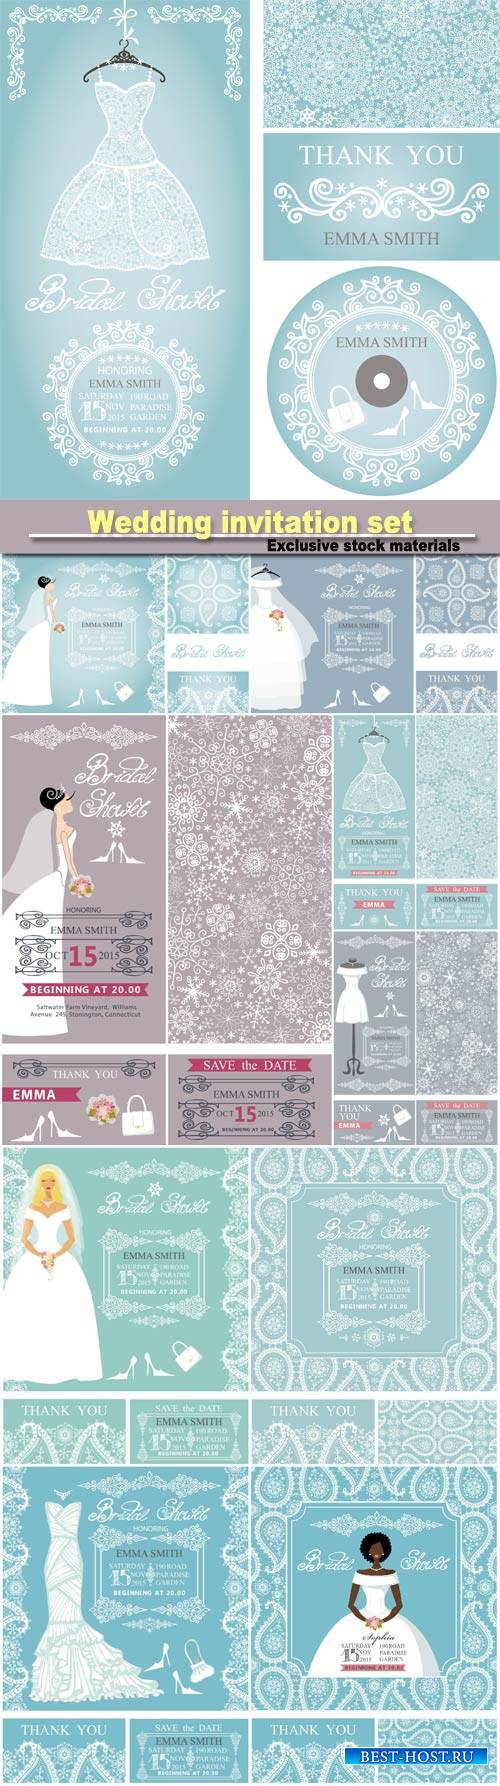 Wedding invitation set, beautiful bride in wedding dress